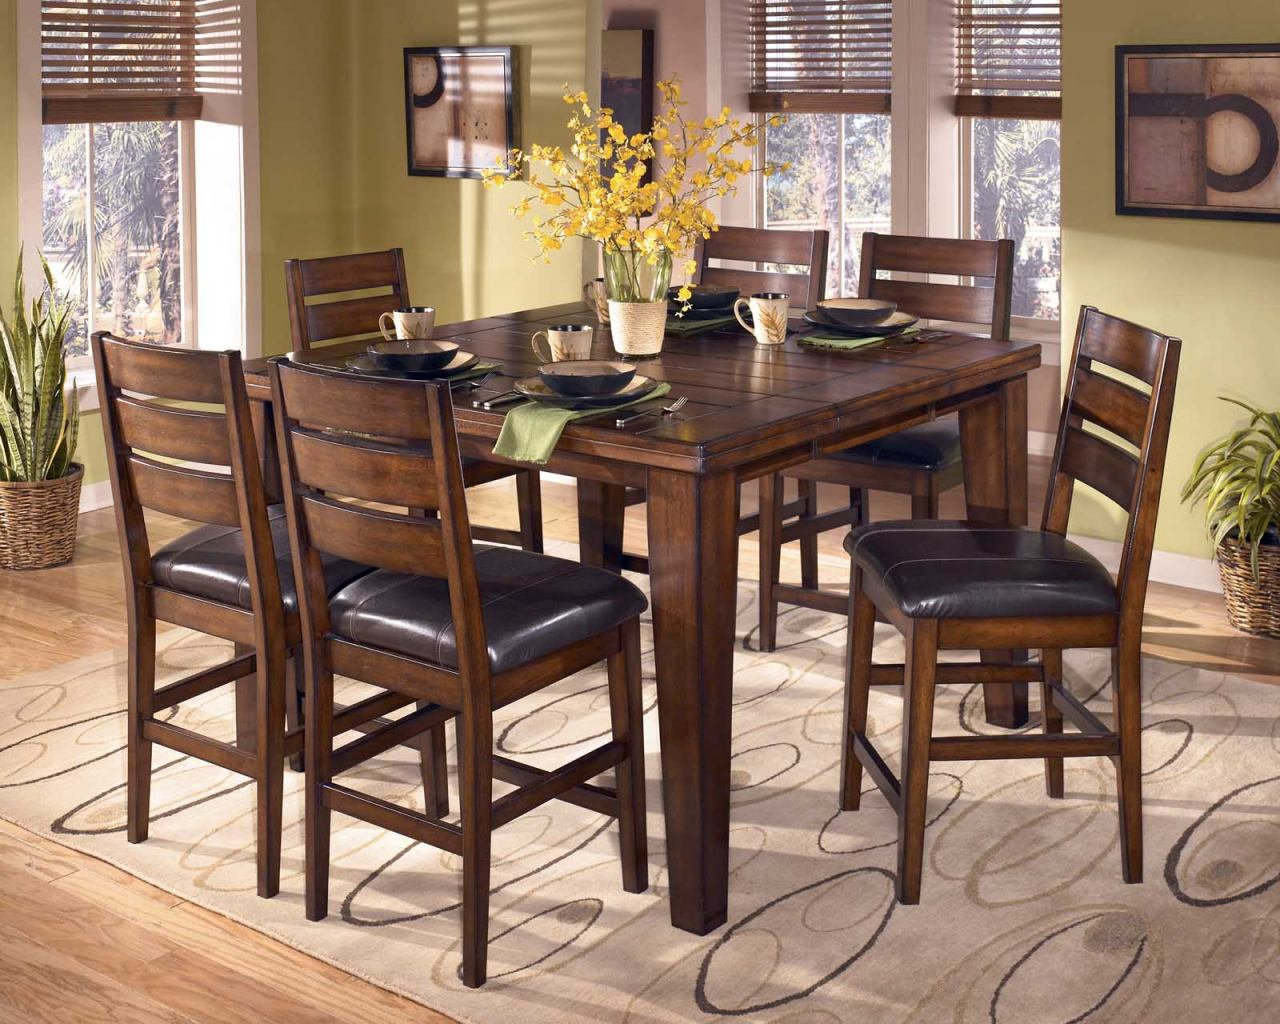 Larchmont 7-Piece Butterfly Leaf Counter Height Dining Set